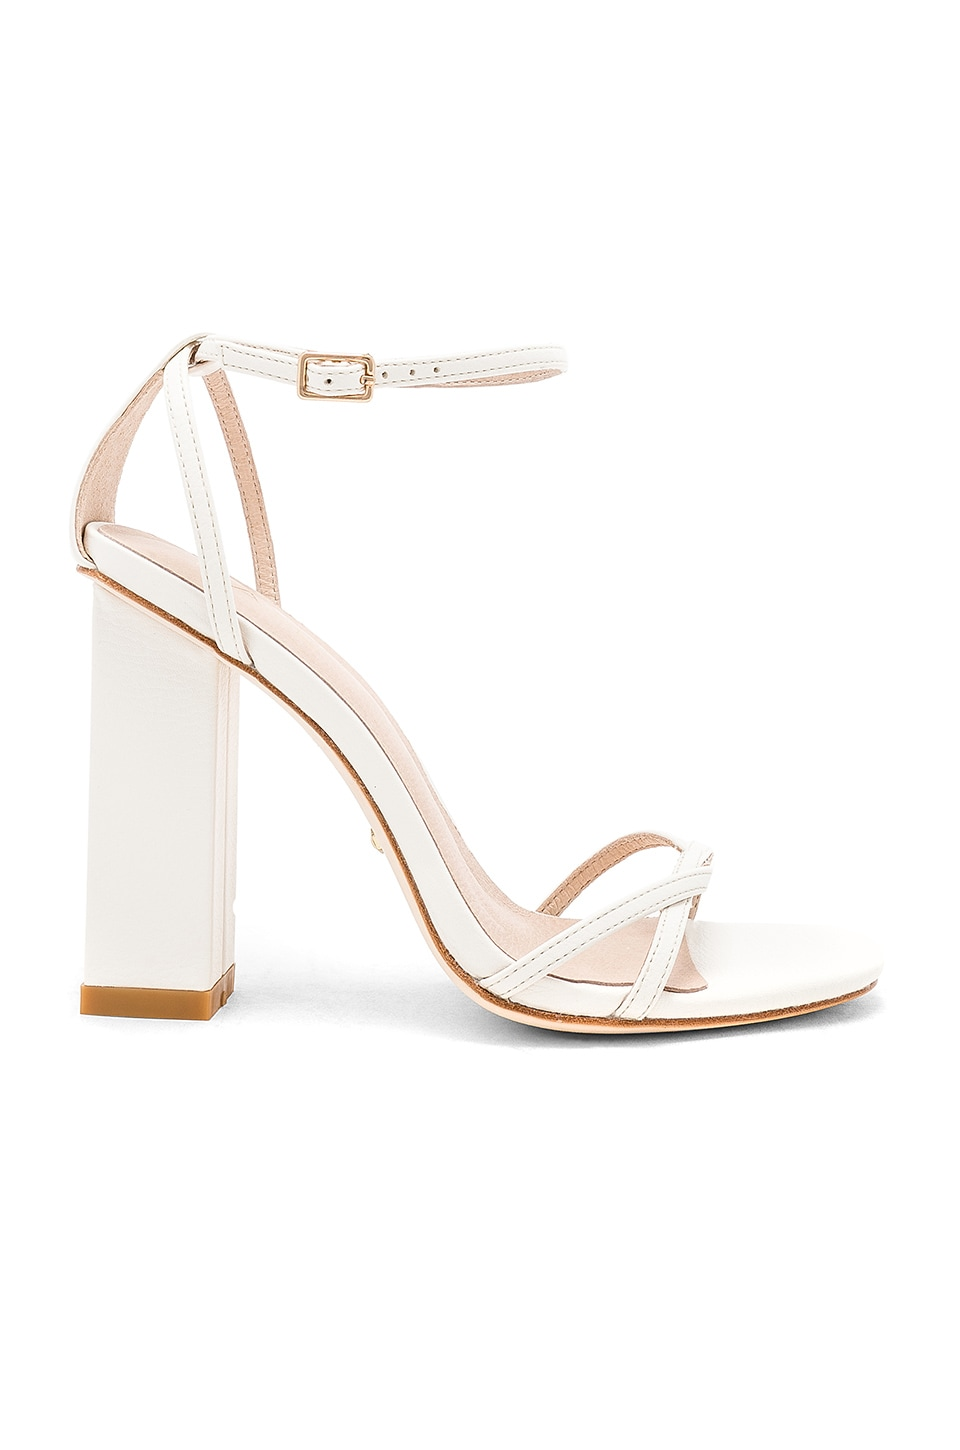 RAYE Hatty Heel in White